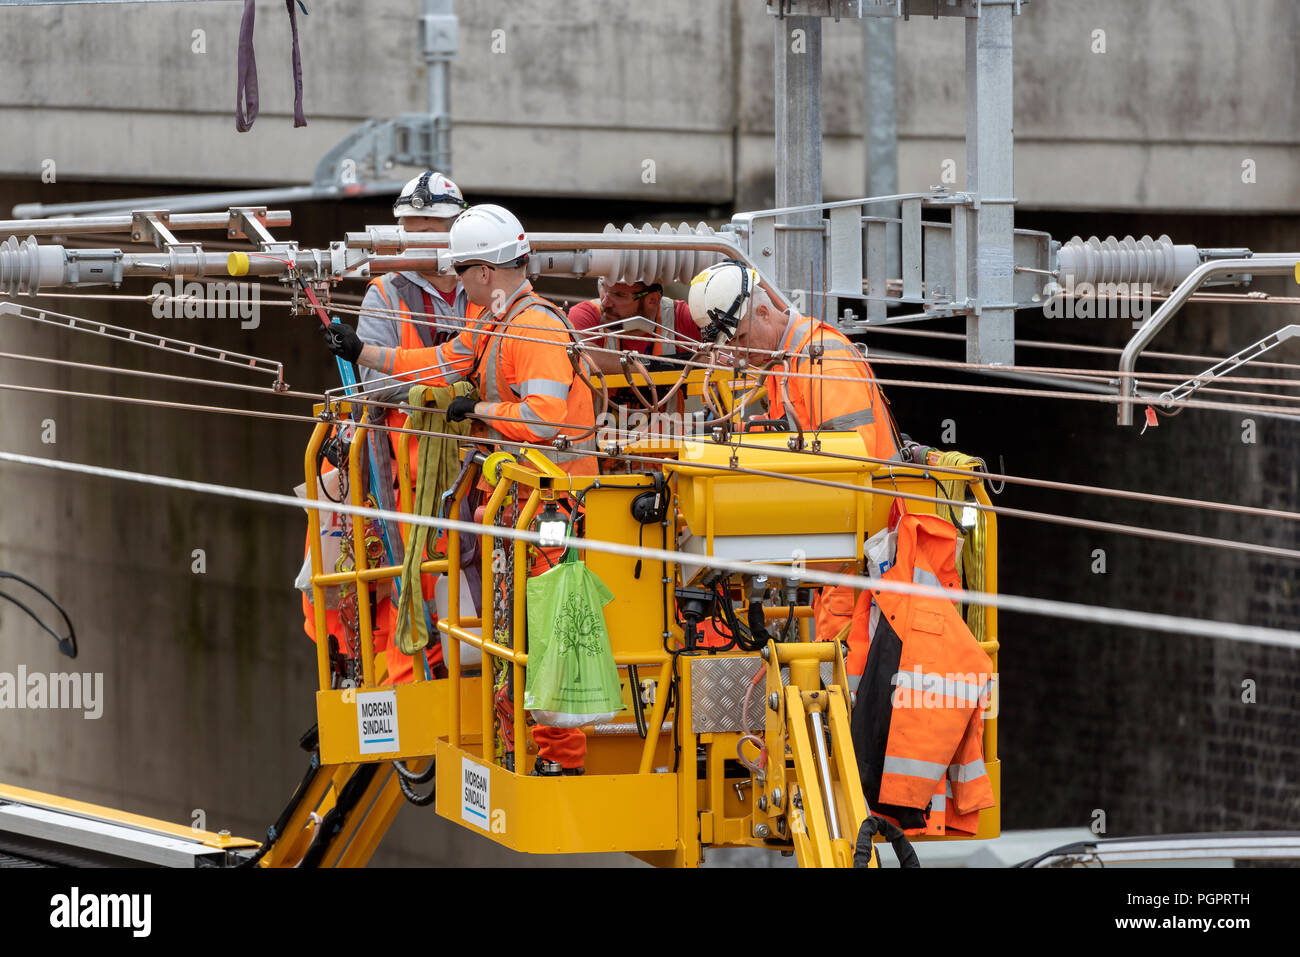 Newbury Station, Berkshire UK. Engineers working on the electrification  of the railway line at Newbury earlier today. The Great Western Railway region is closed in ths area until August 31st. Credit: Peter Titmuss/Alamy Live News - Stock Image